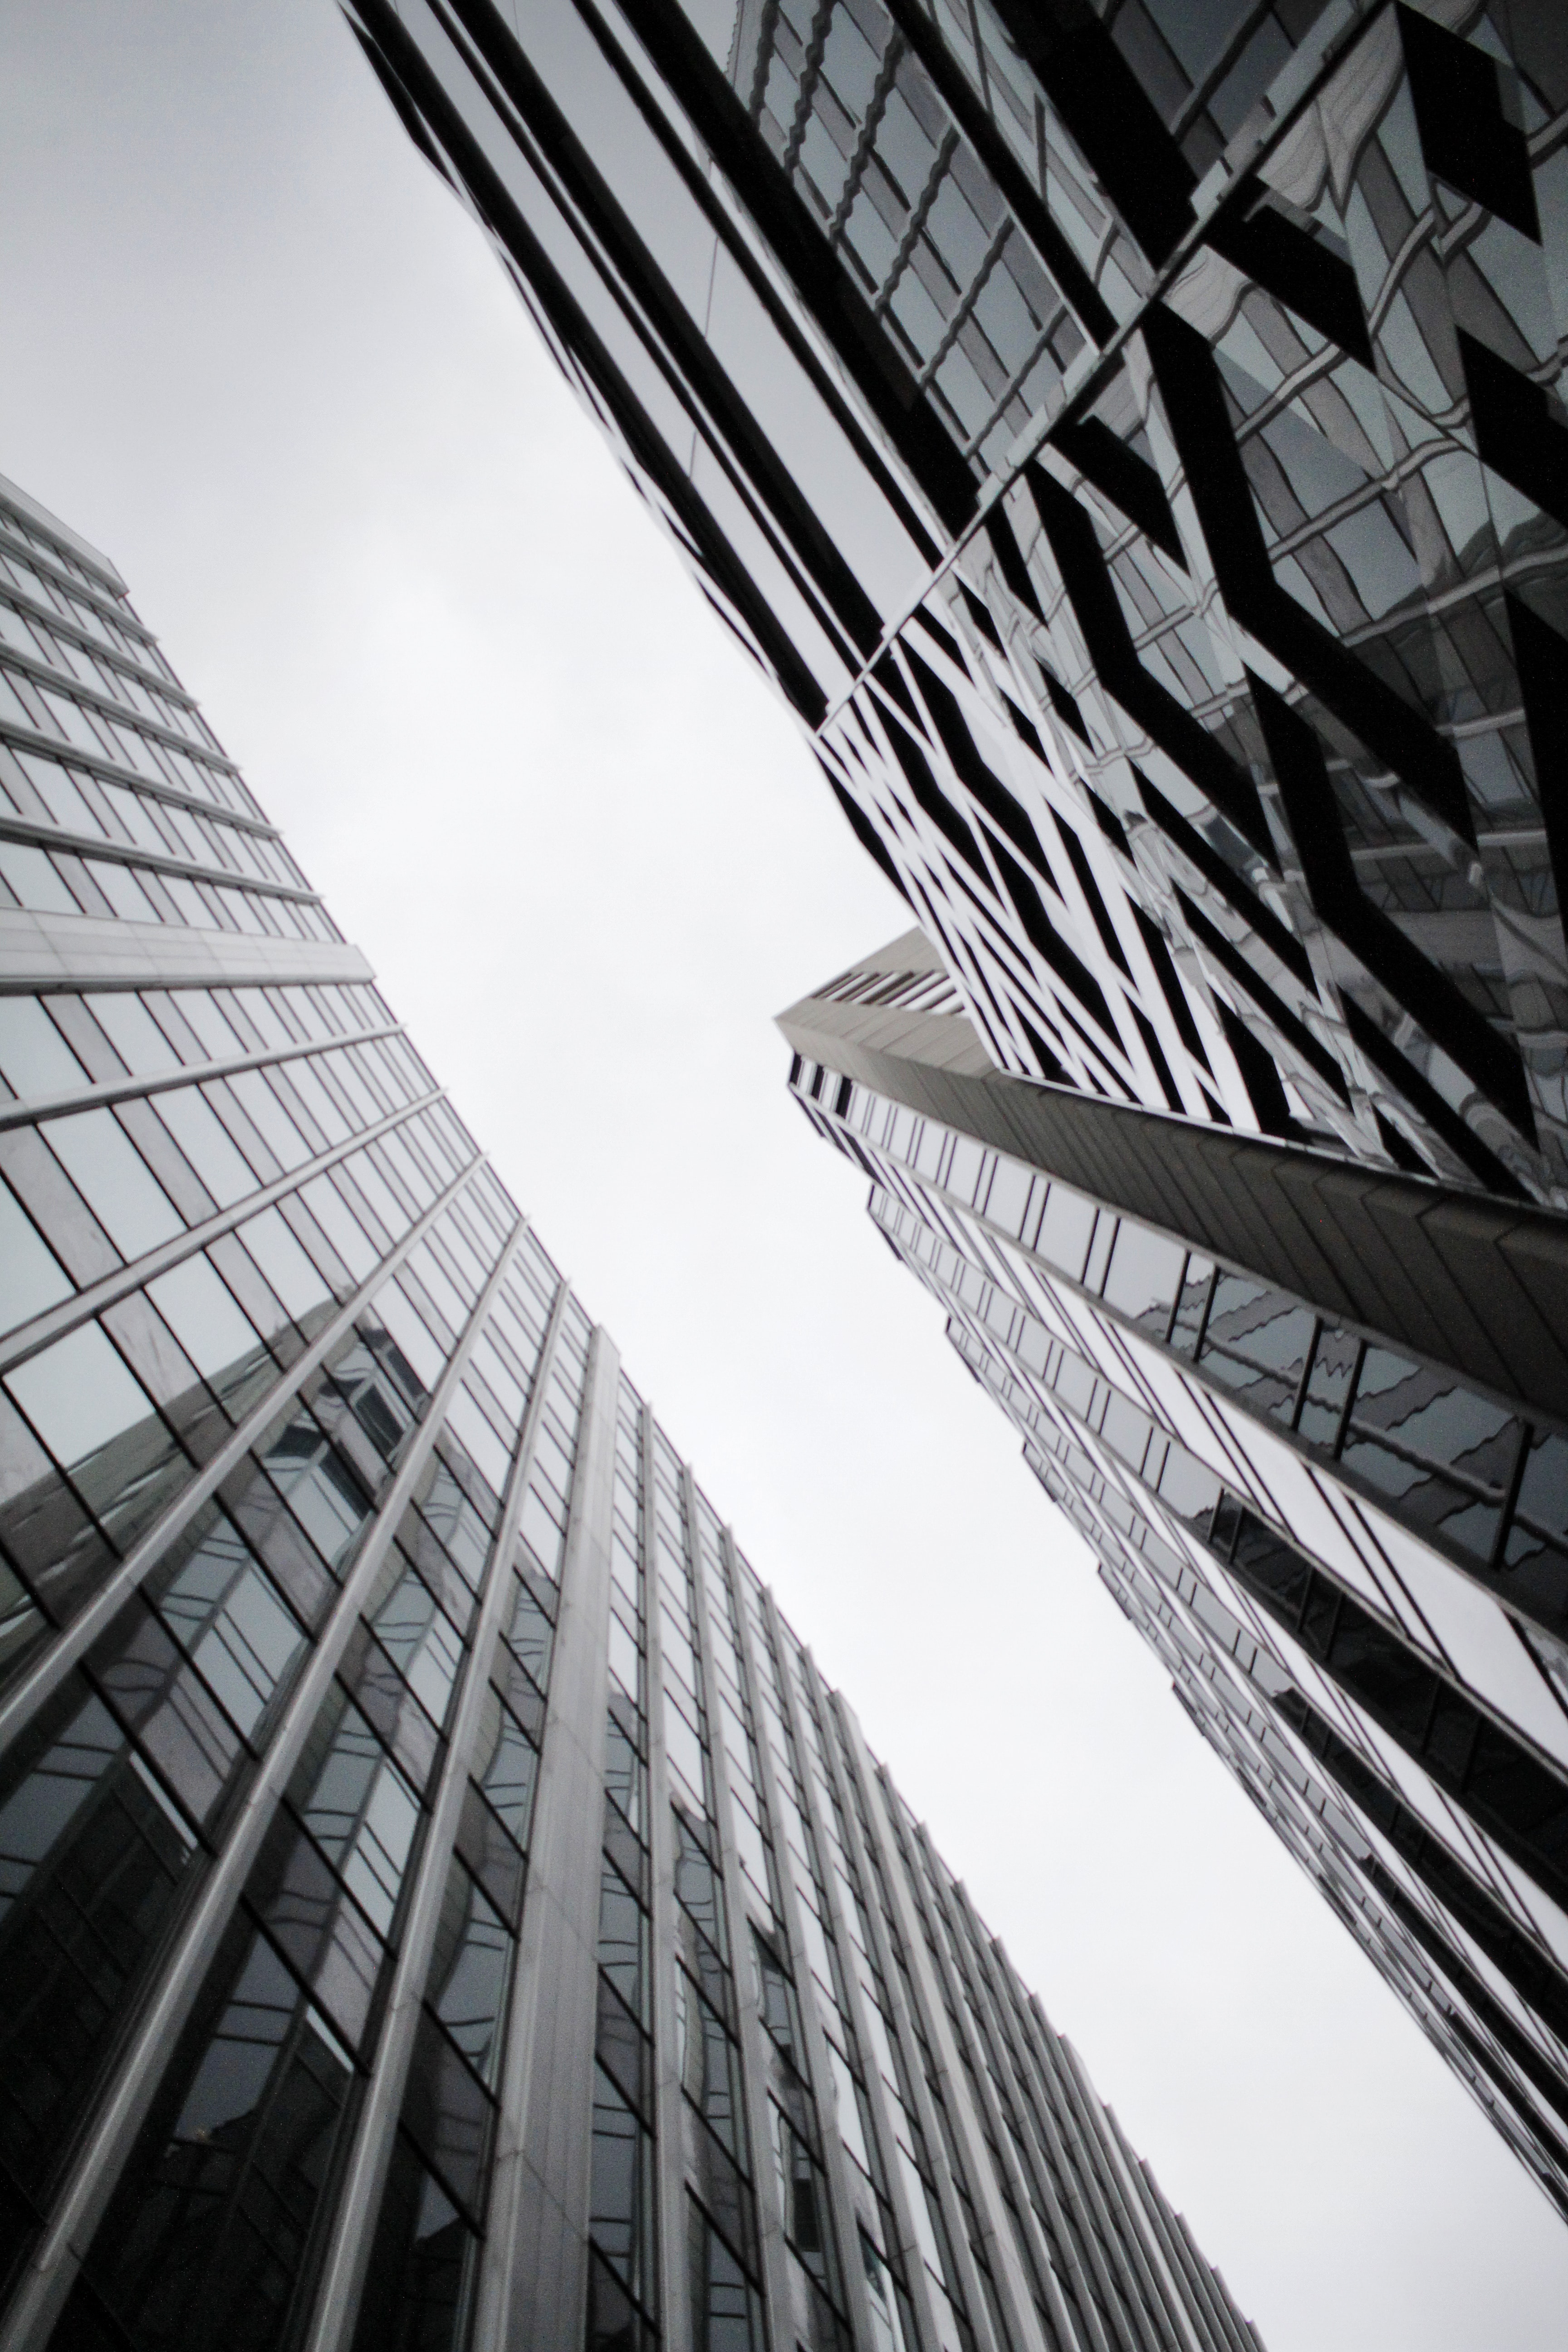 low angle photography of curtain wall glass buildings